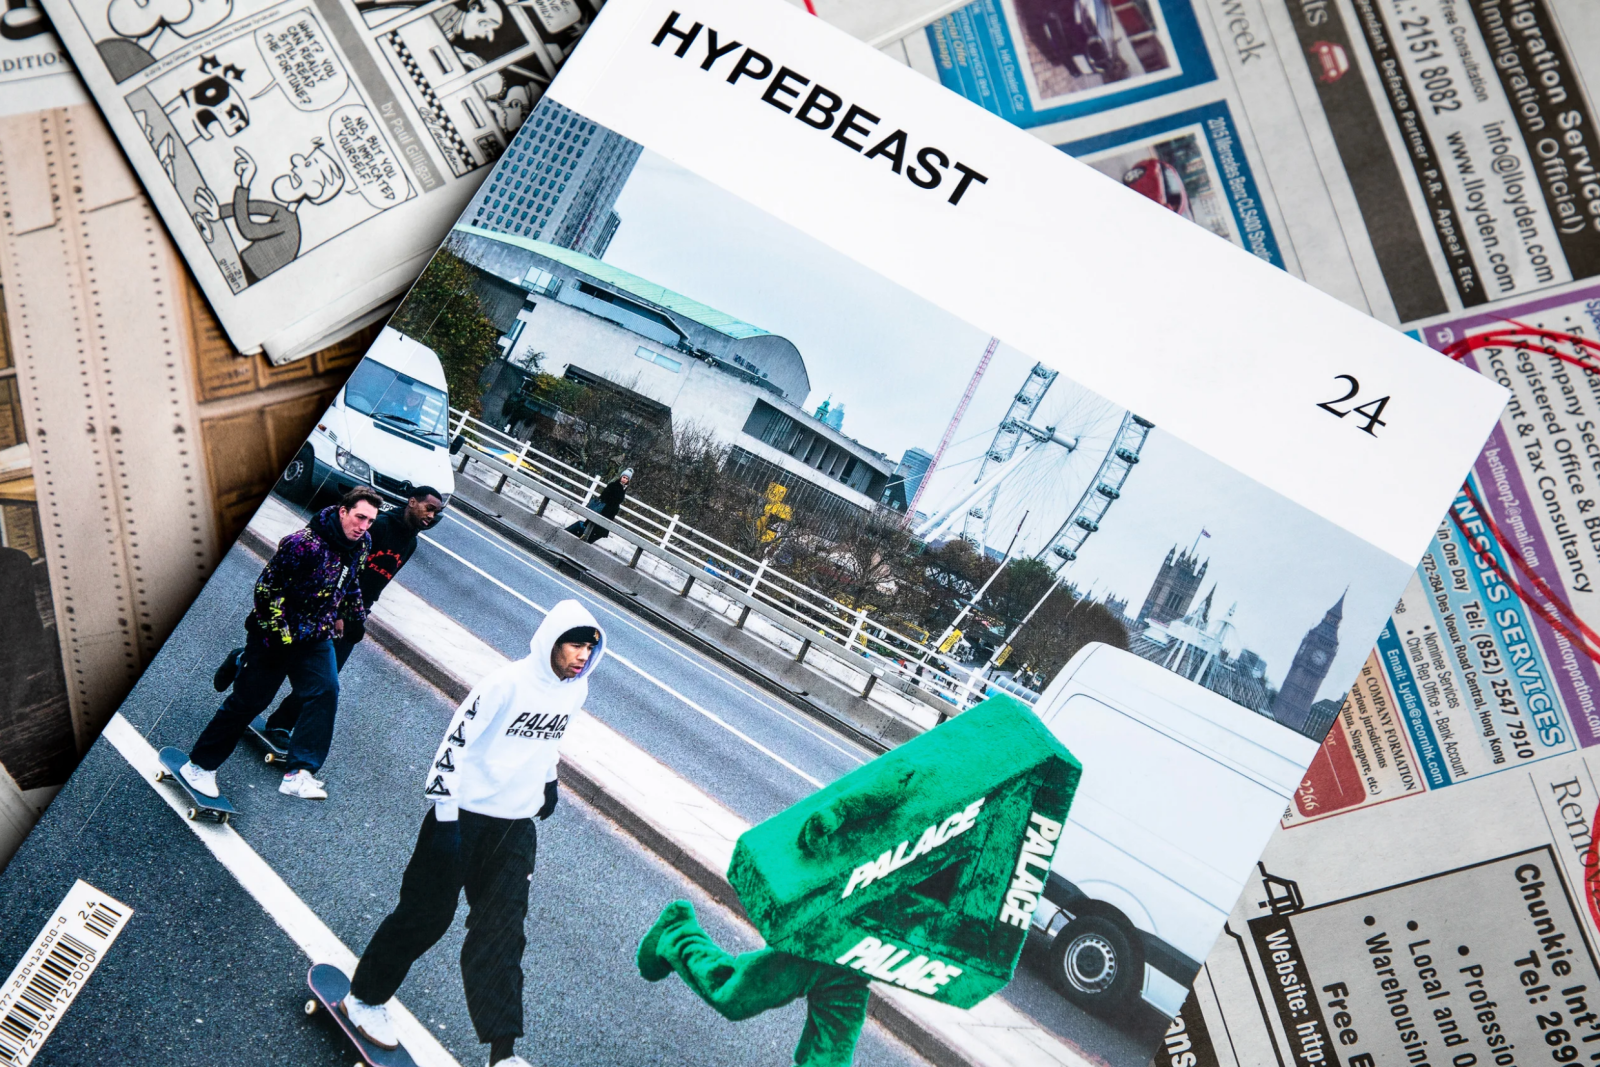 HYPEBEAST MAGAZINE'S 'AGENCY ISSUE' COVER FEATURES PALACE TEAM